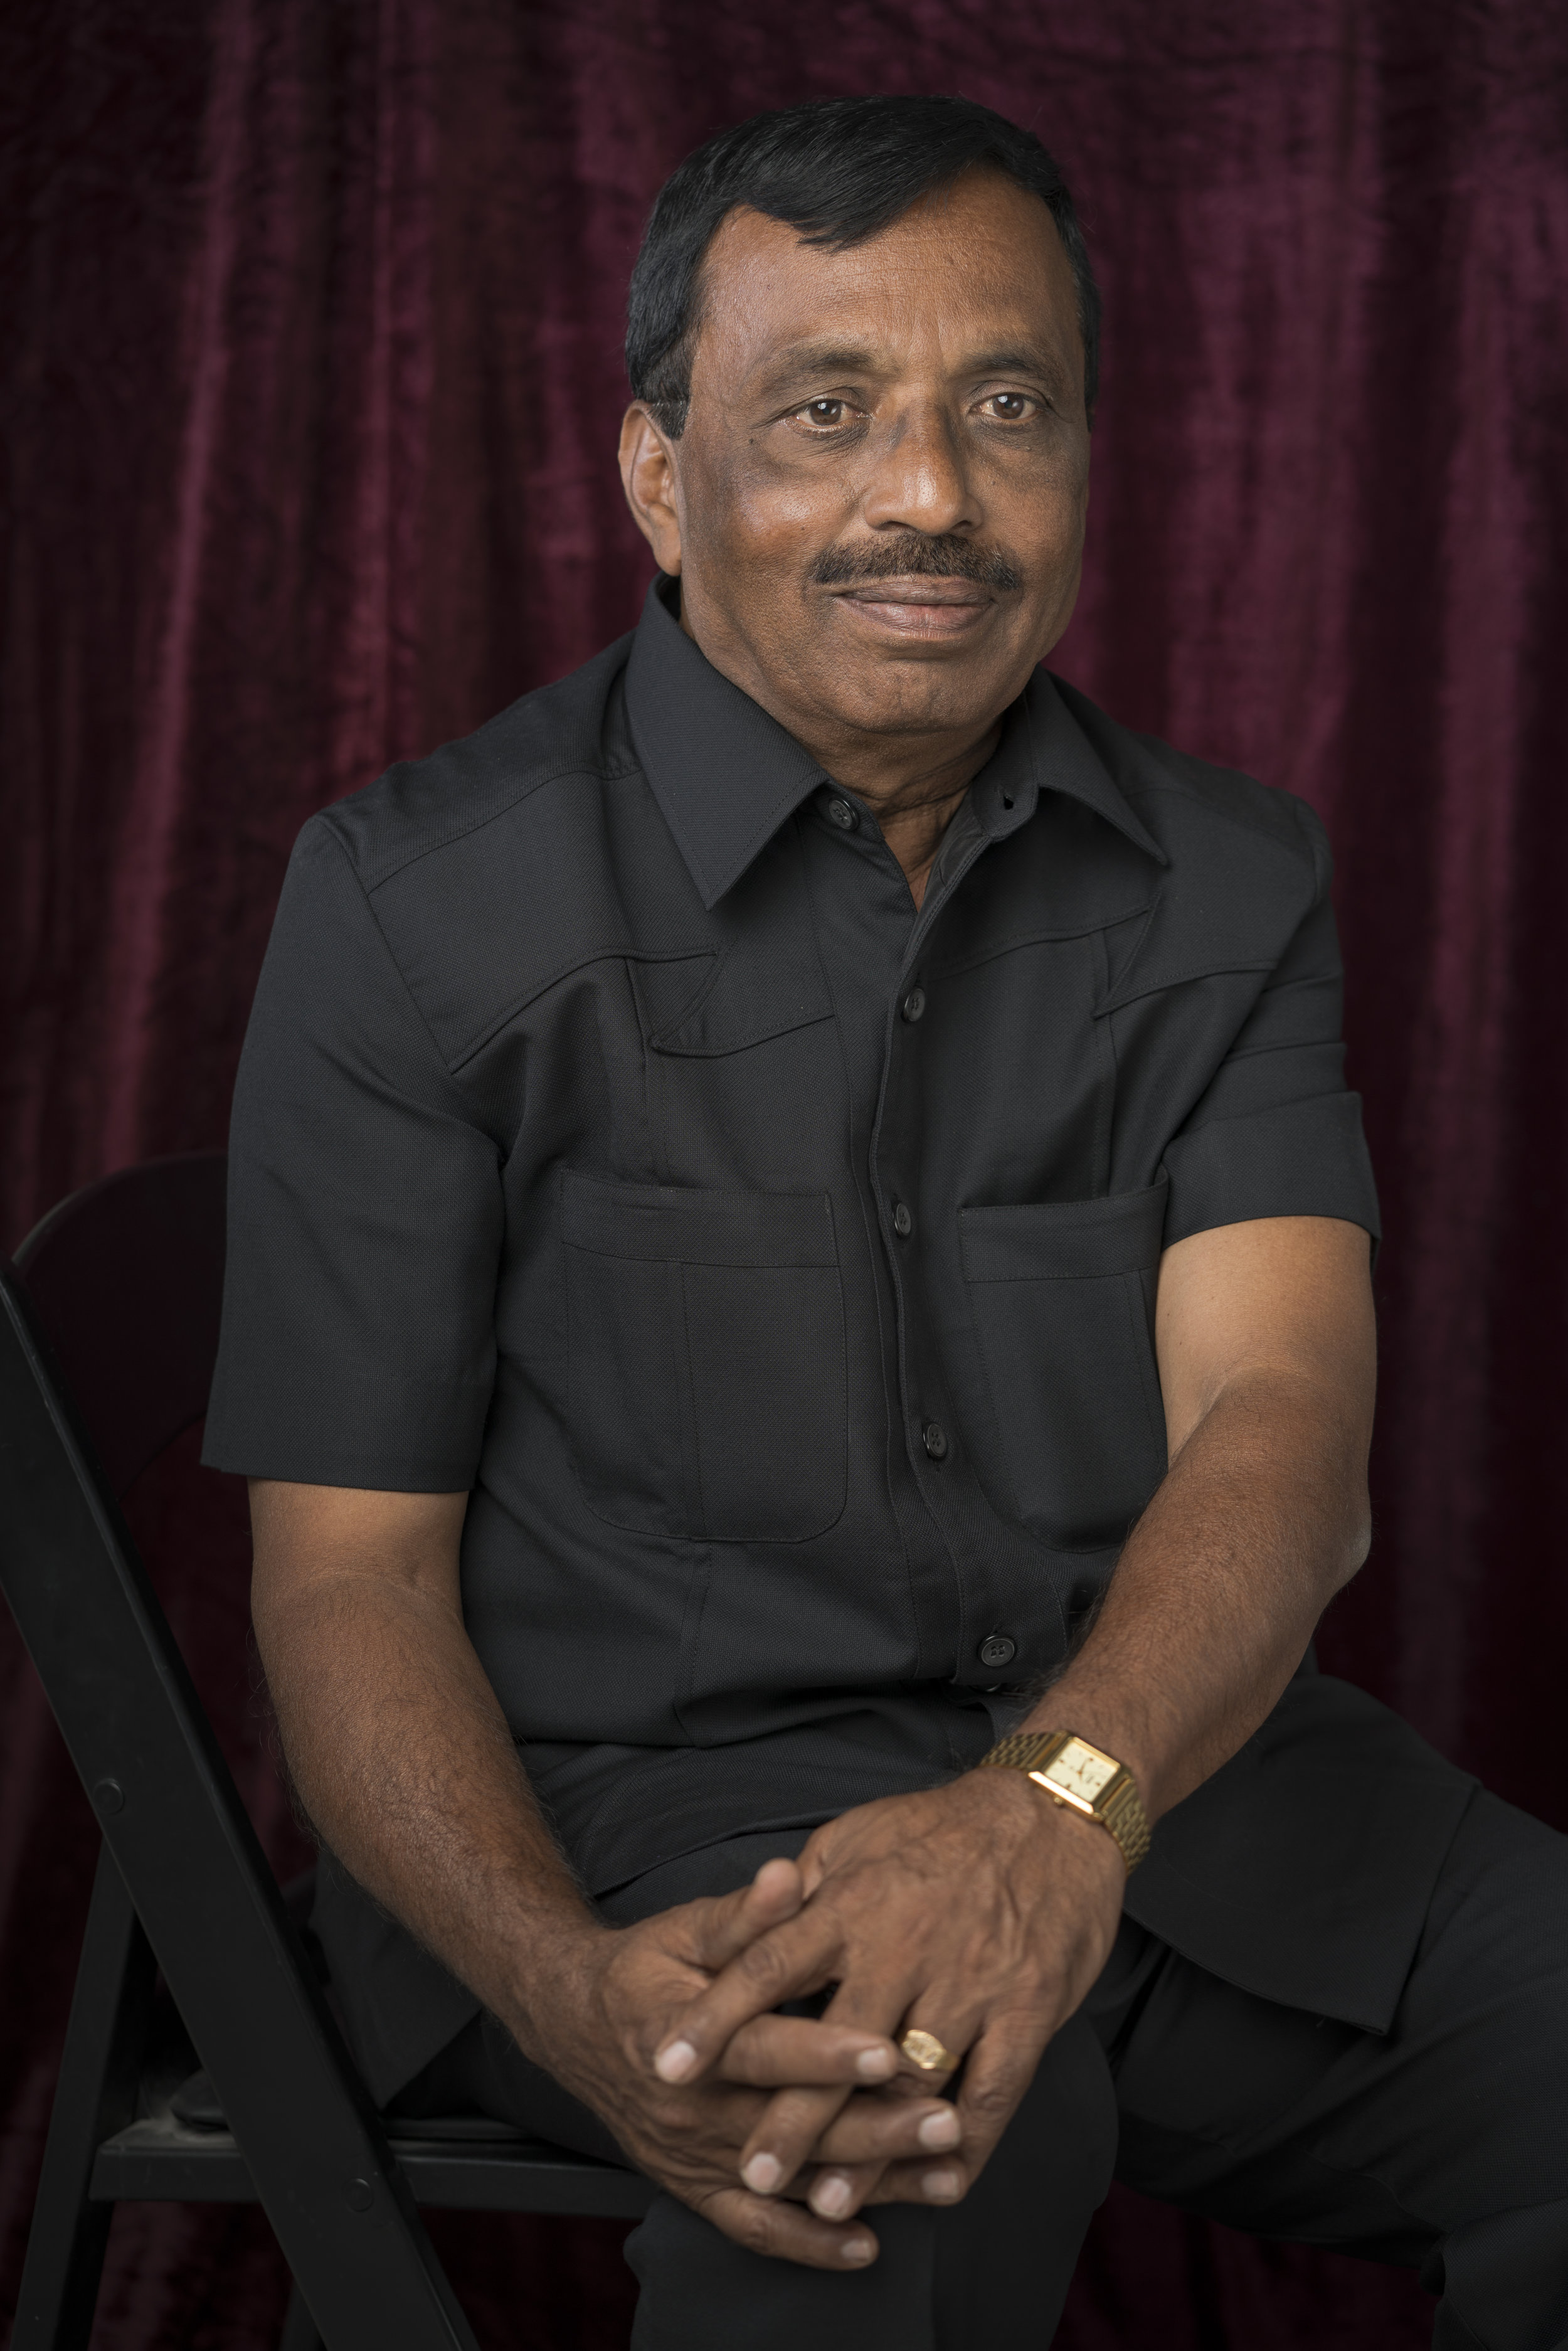 Just like his peers Mr Mallikarjuniah is partial to mechanical watches, the first HMT watch Janata being his favourite.